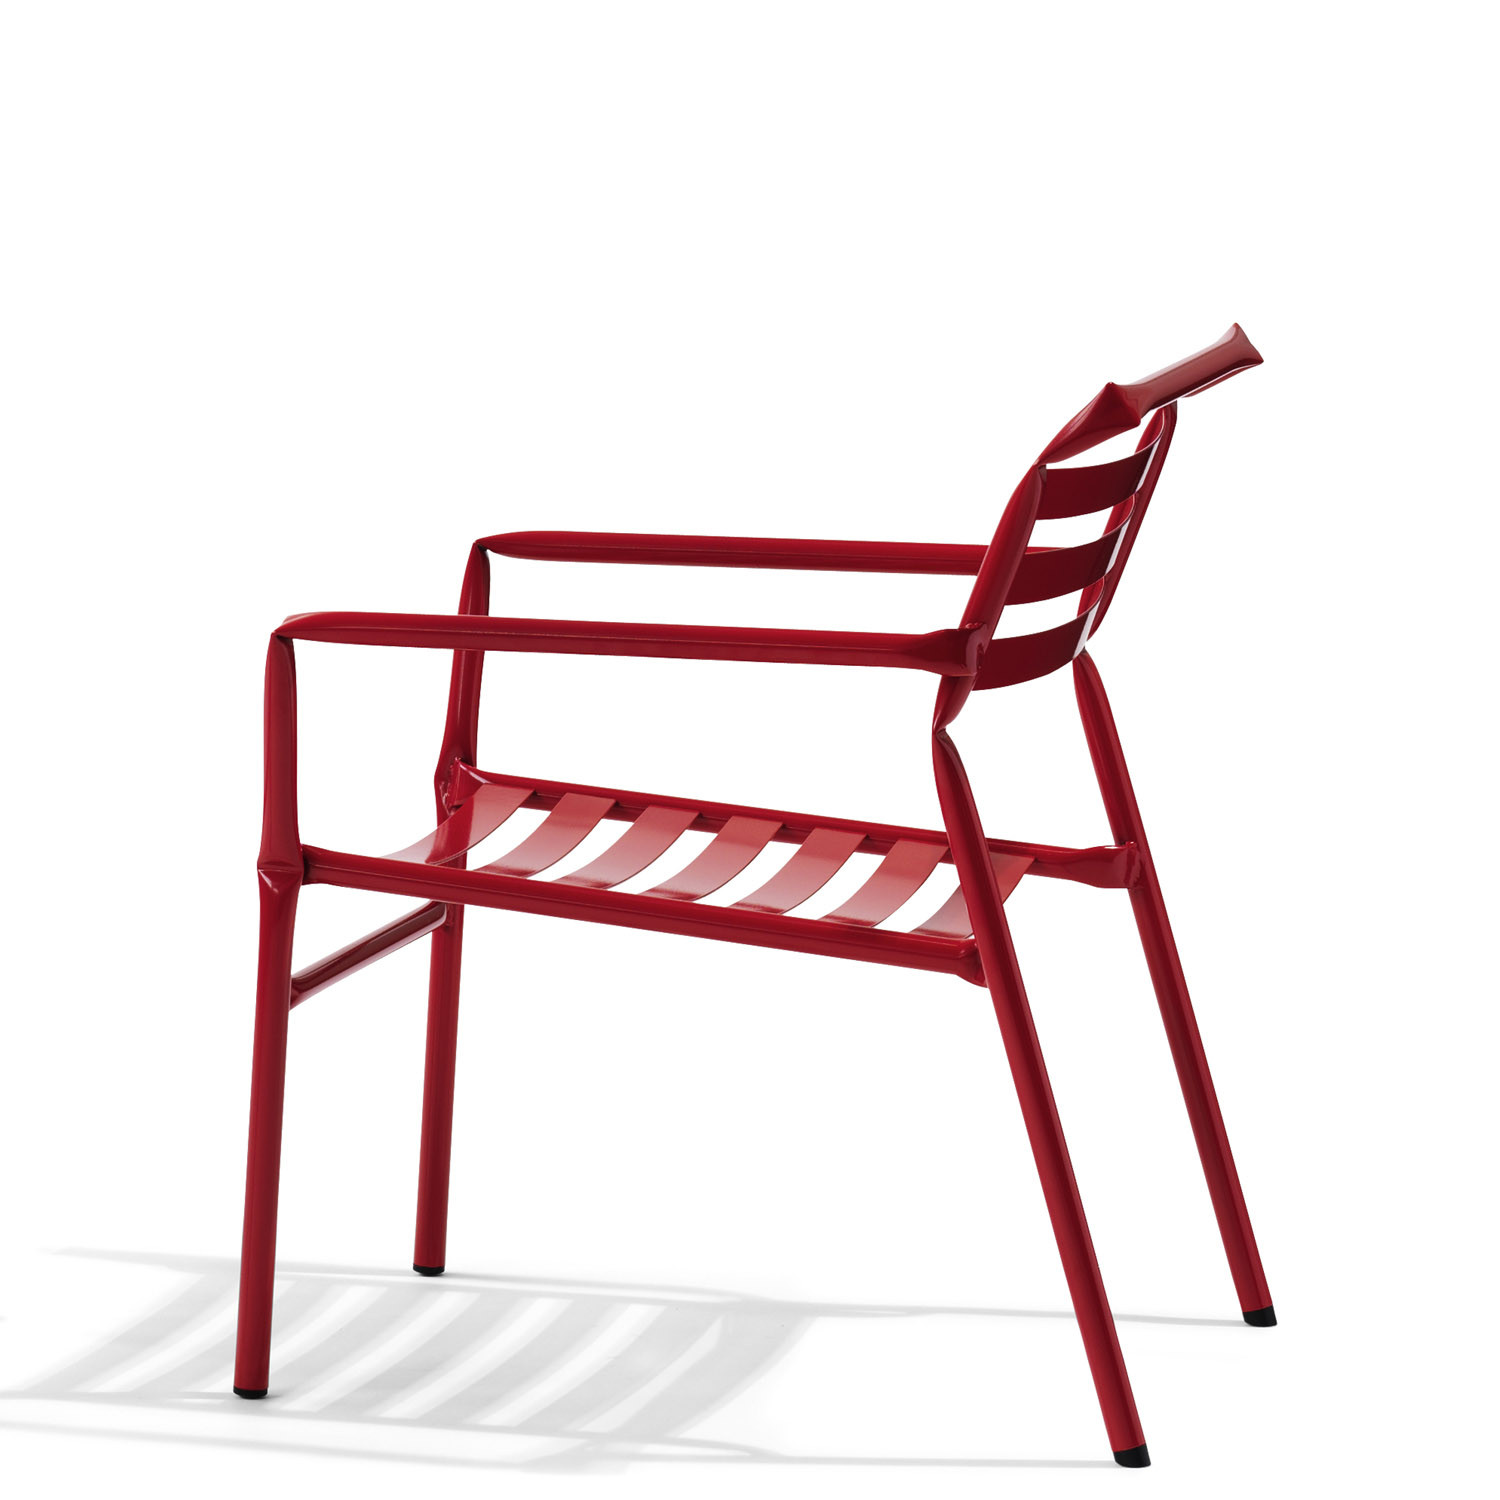 Straw O36 Chair by Osko + Deichmann